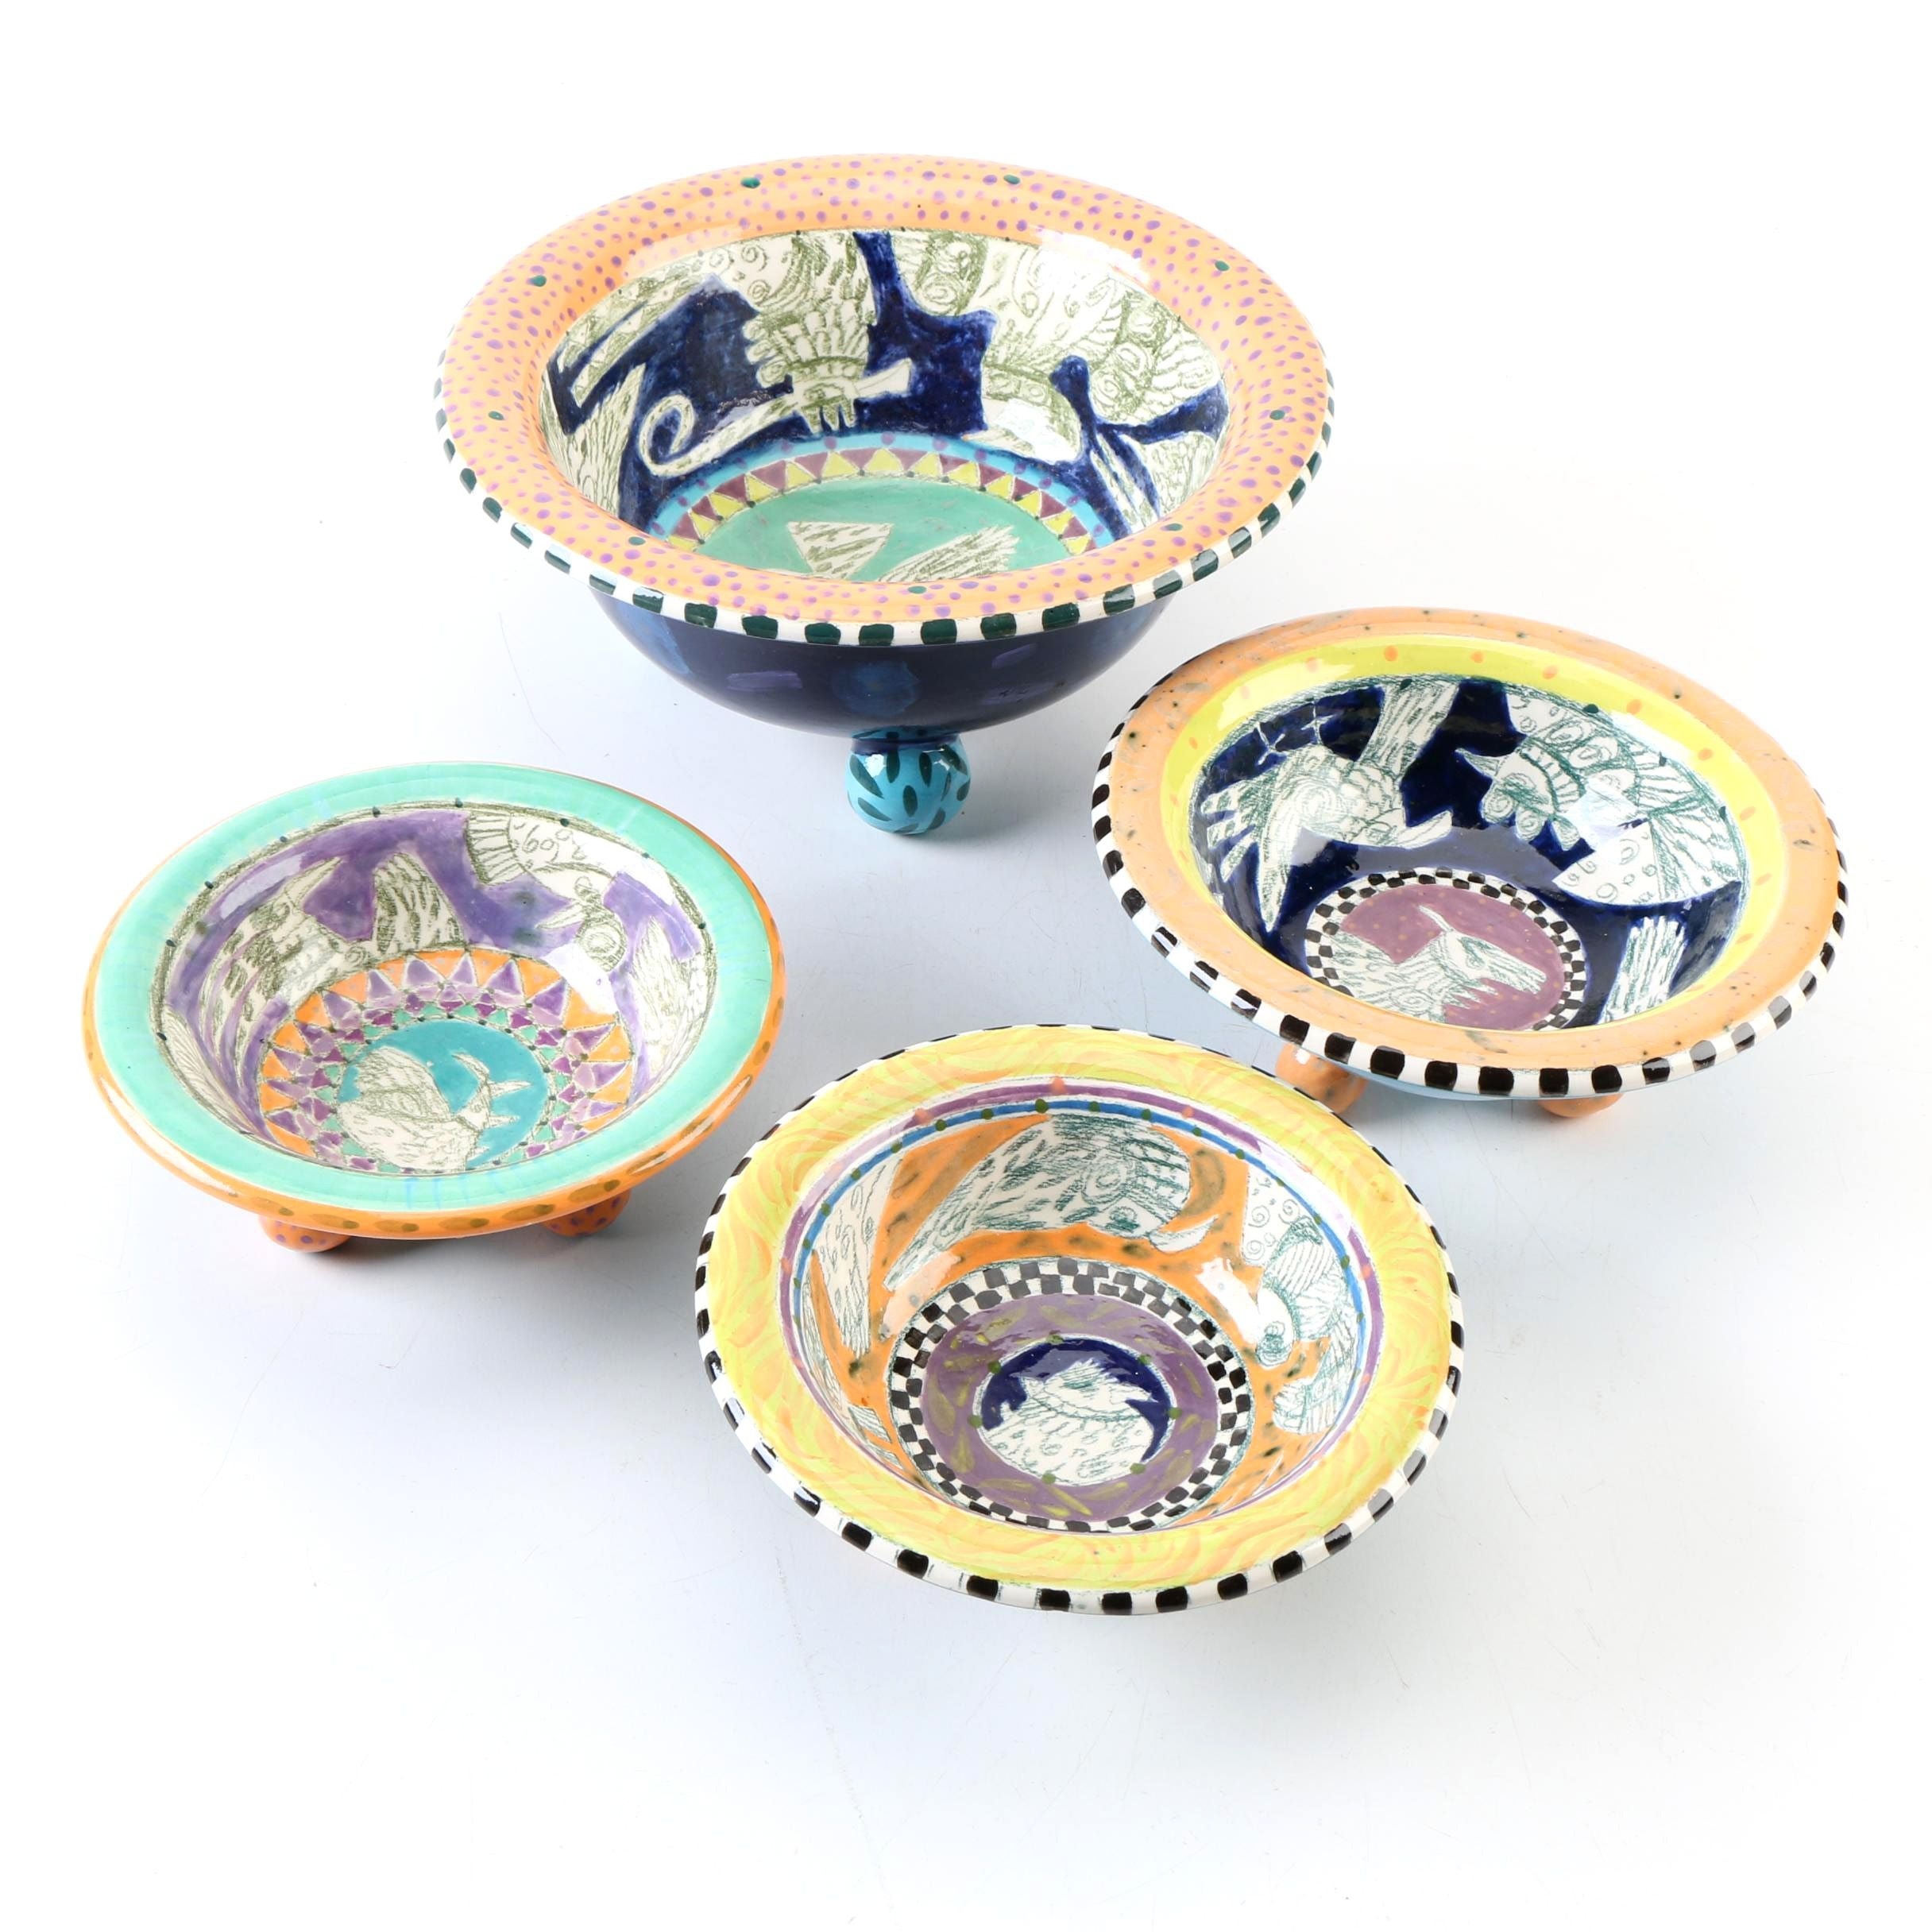 Set of Hand-Painted Art Pottery Bowls by Linda Hojem